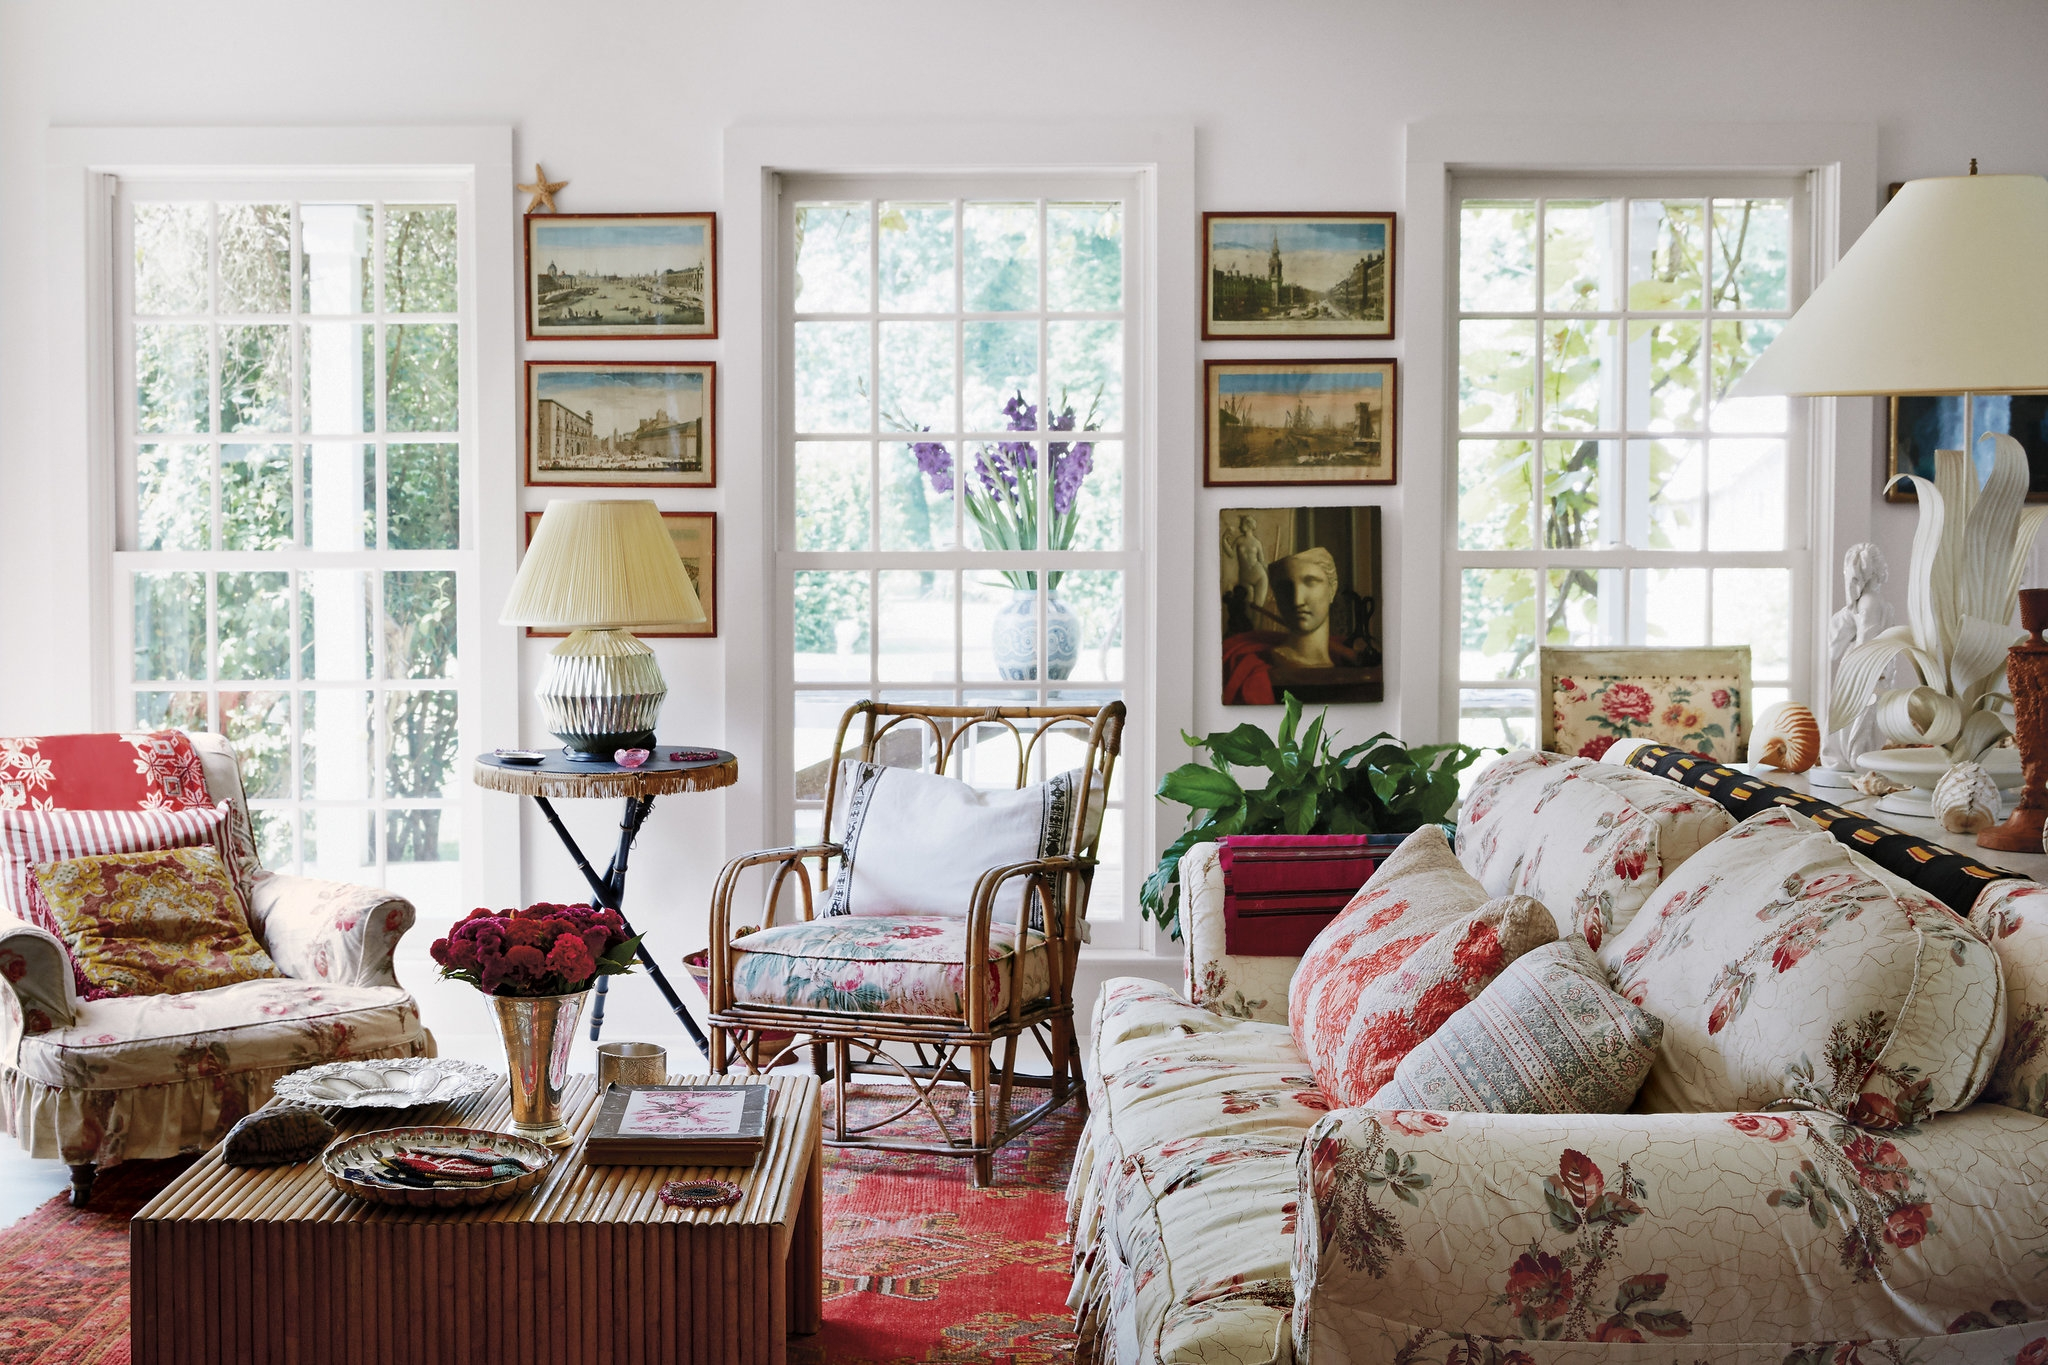 Exquisite Pleasures The Living Room With A Sofa And Armchairs Intended For Chintz Covered Sofas (Image 5 of 15)